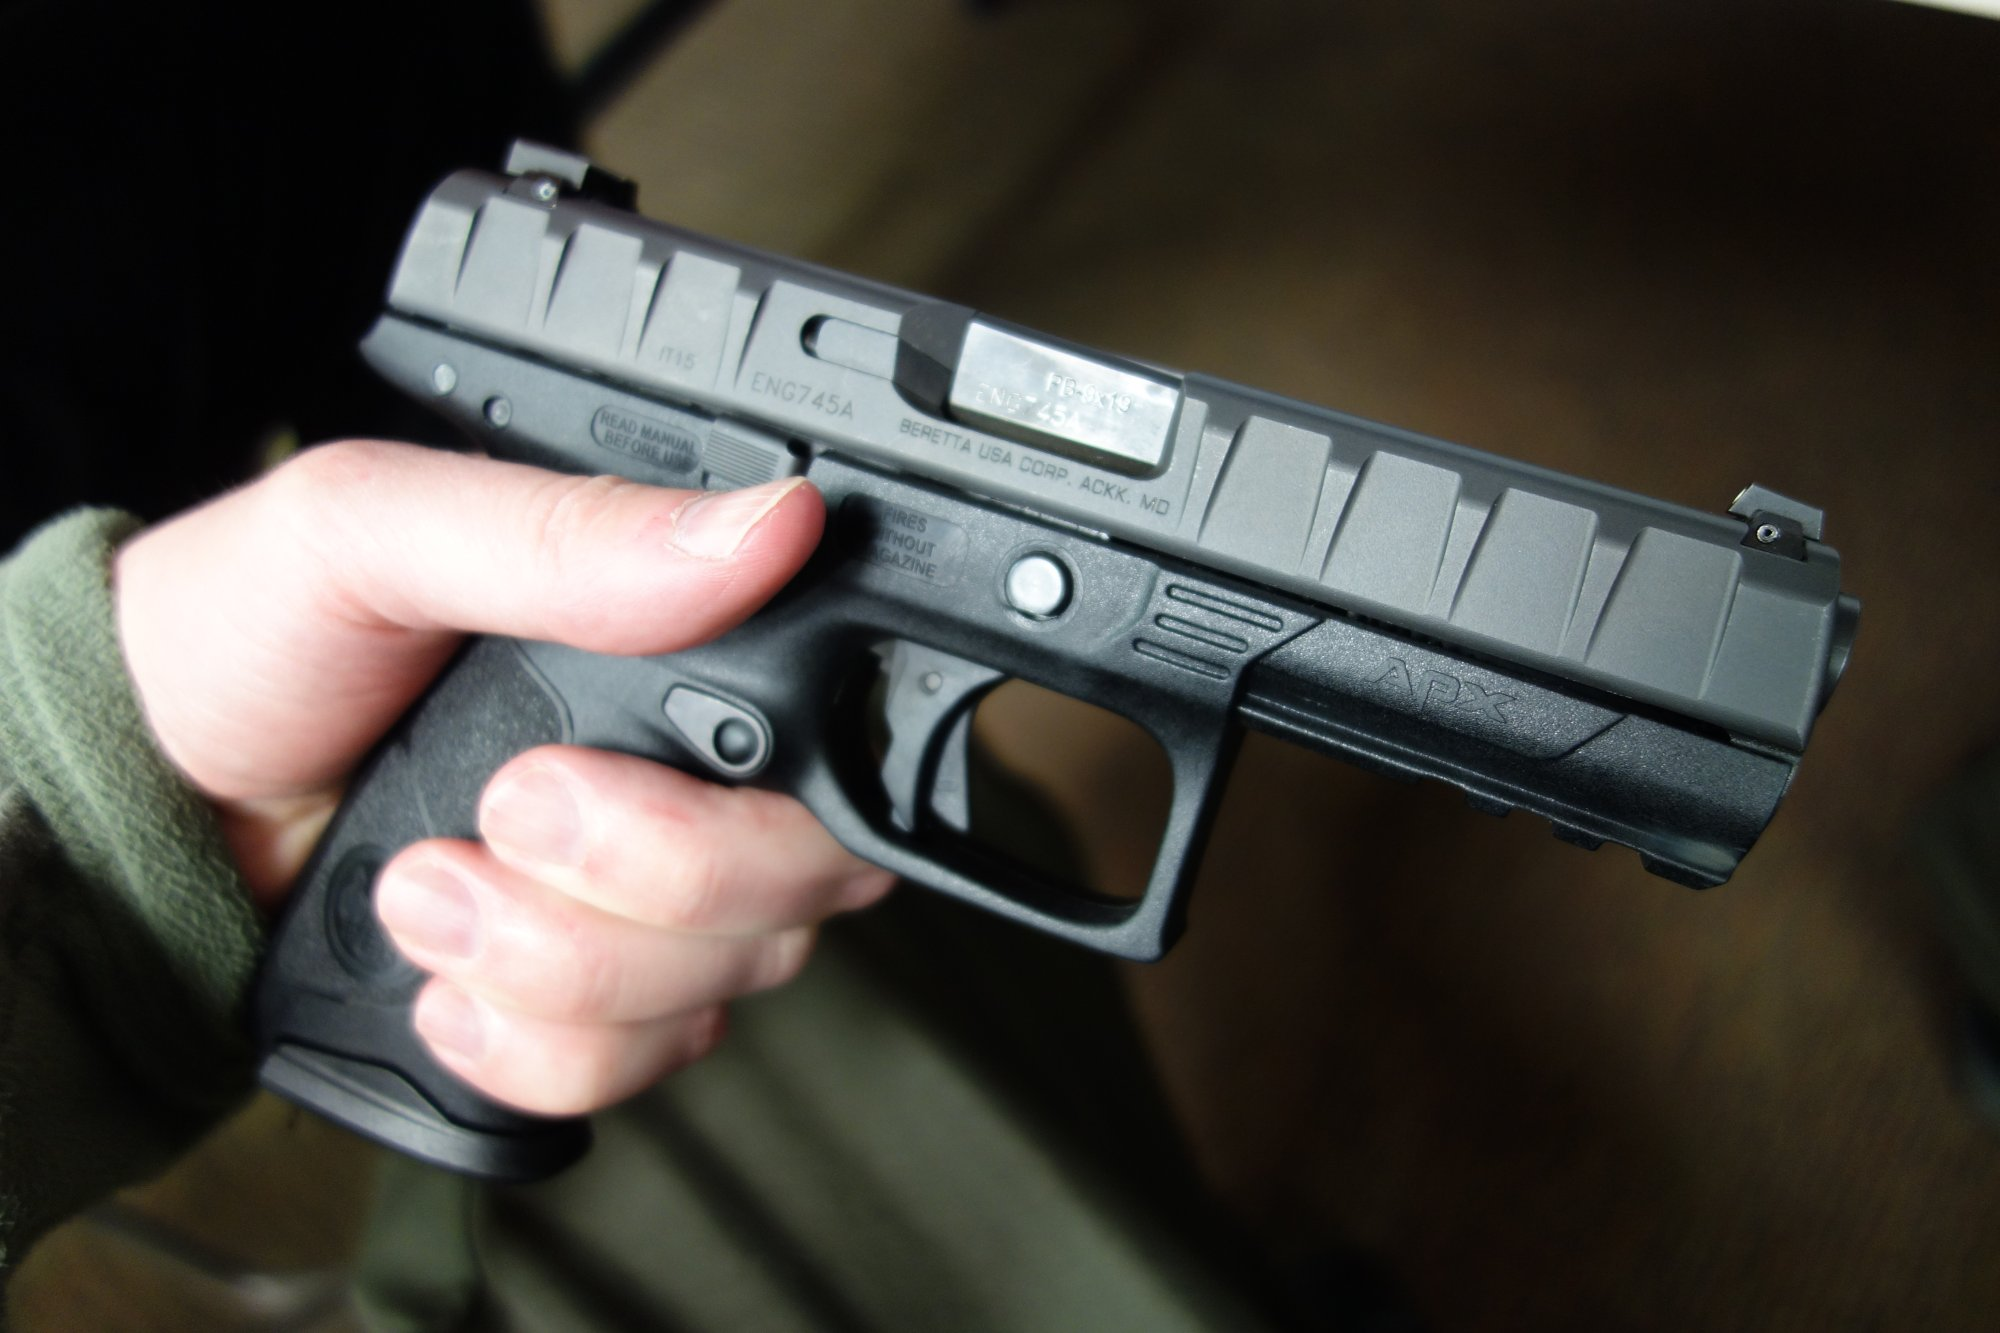 Hands On With Beretta Apx Striker Fired Polymer Frame